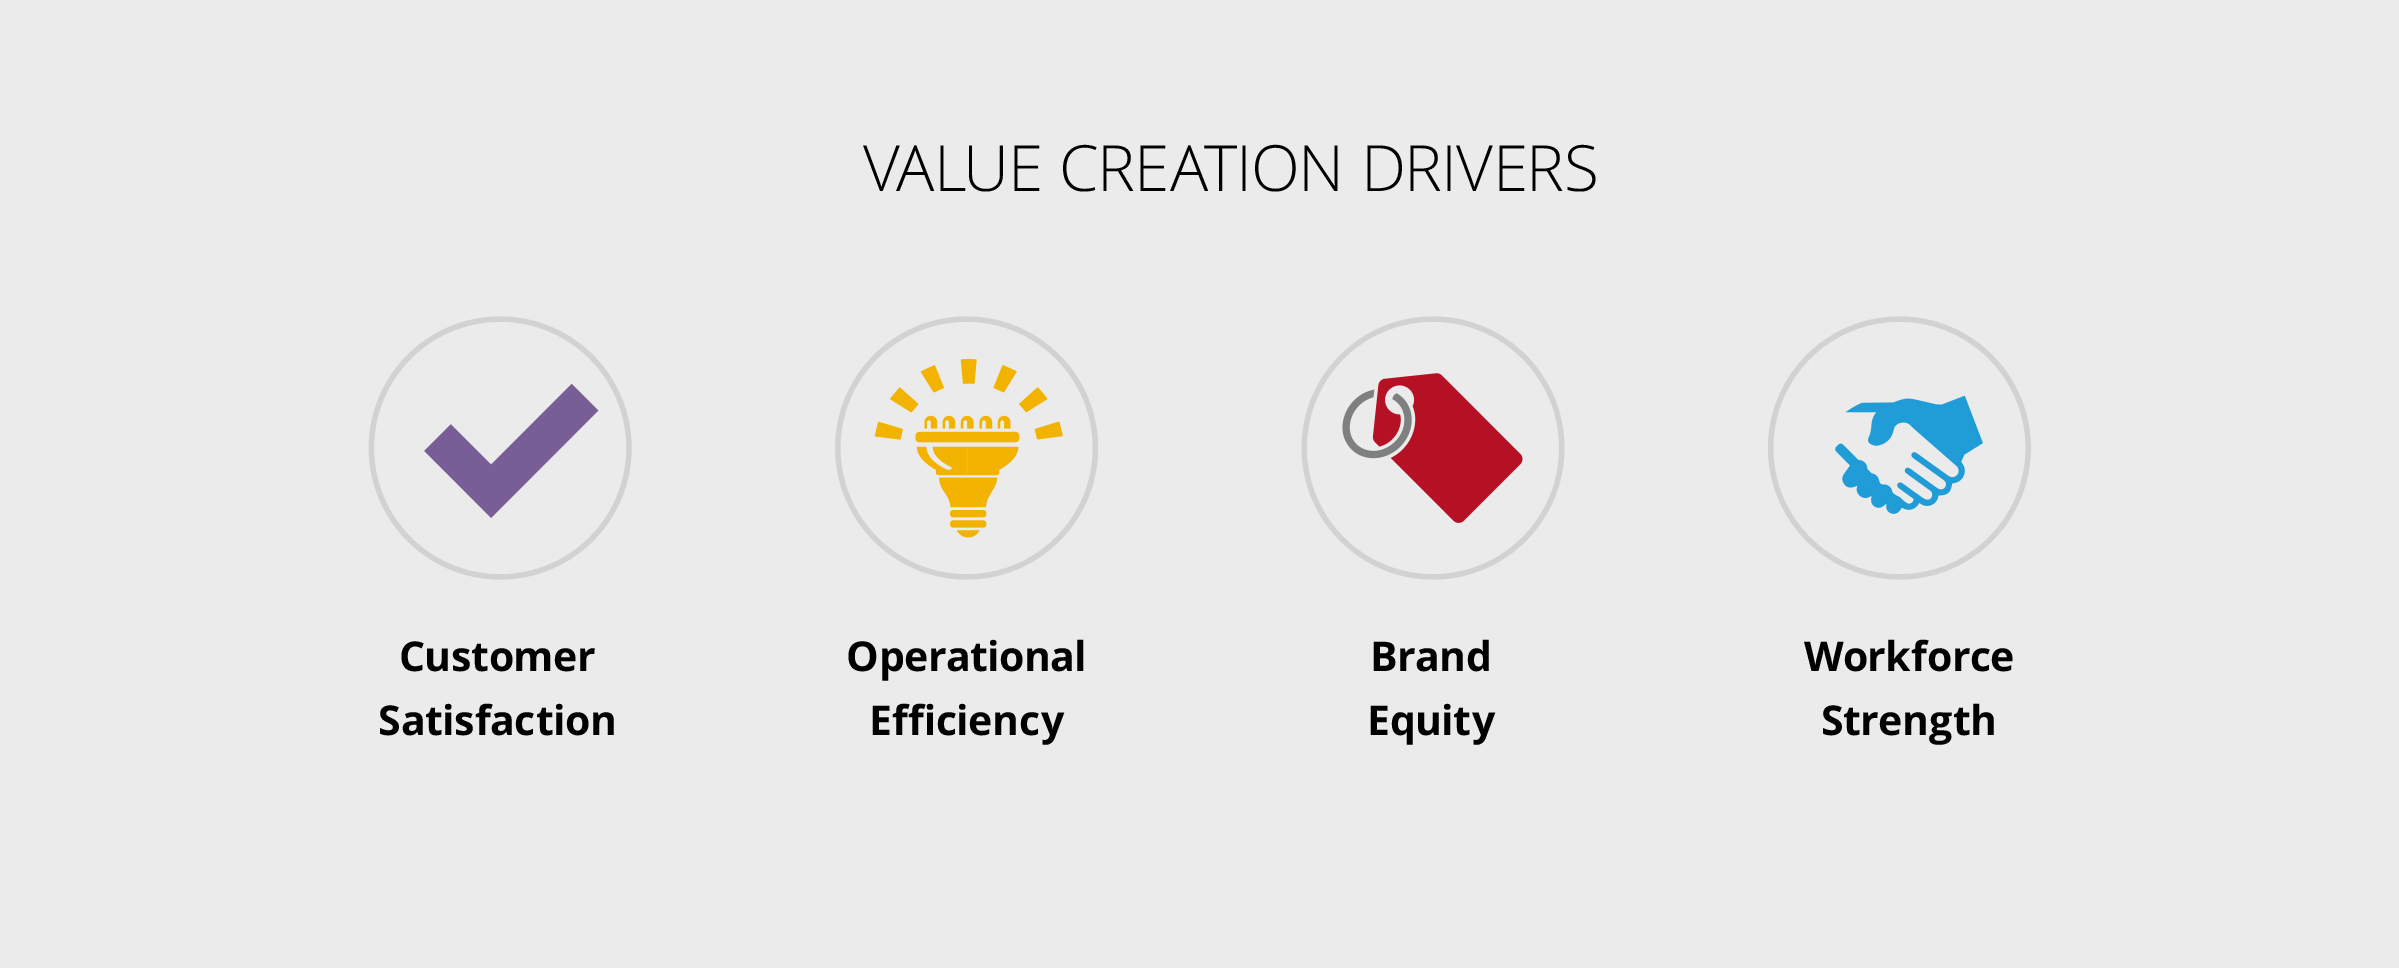 Value Creation Drivers